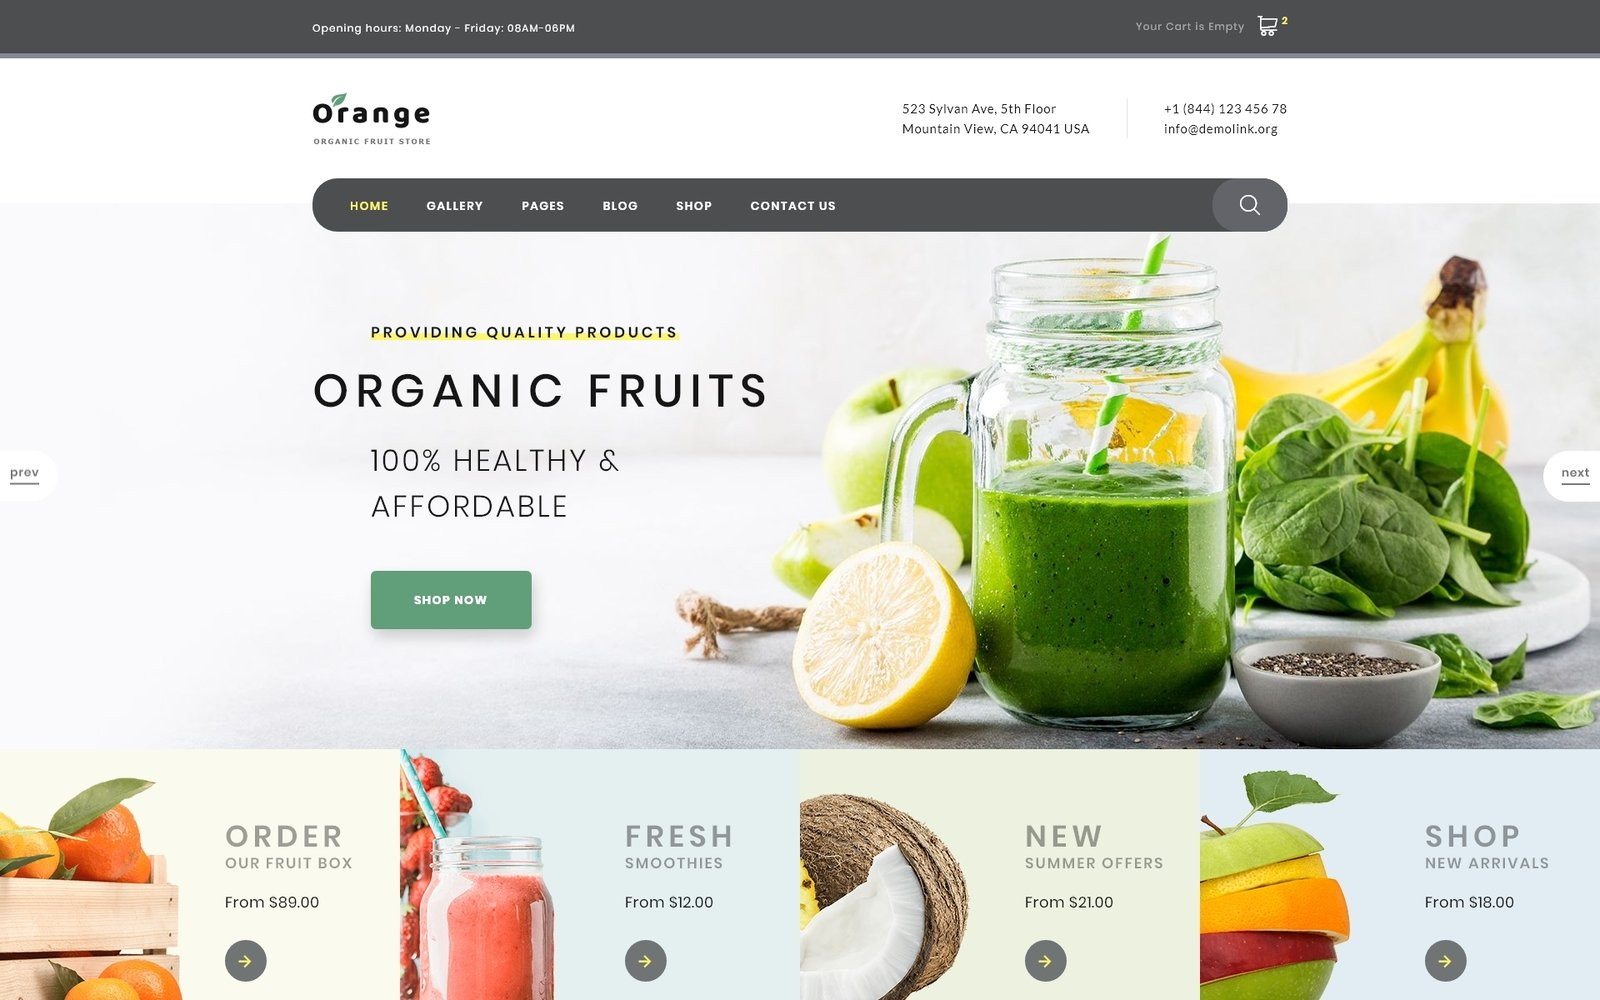 Orange - Organic Fruit Farm Website Template